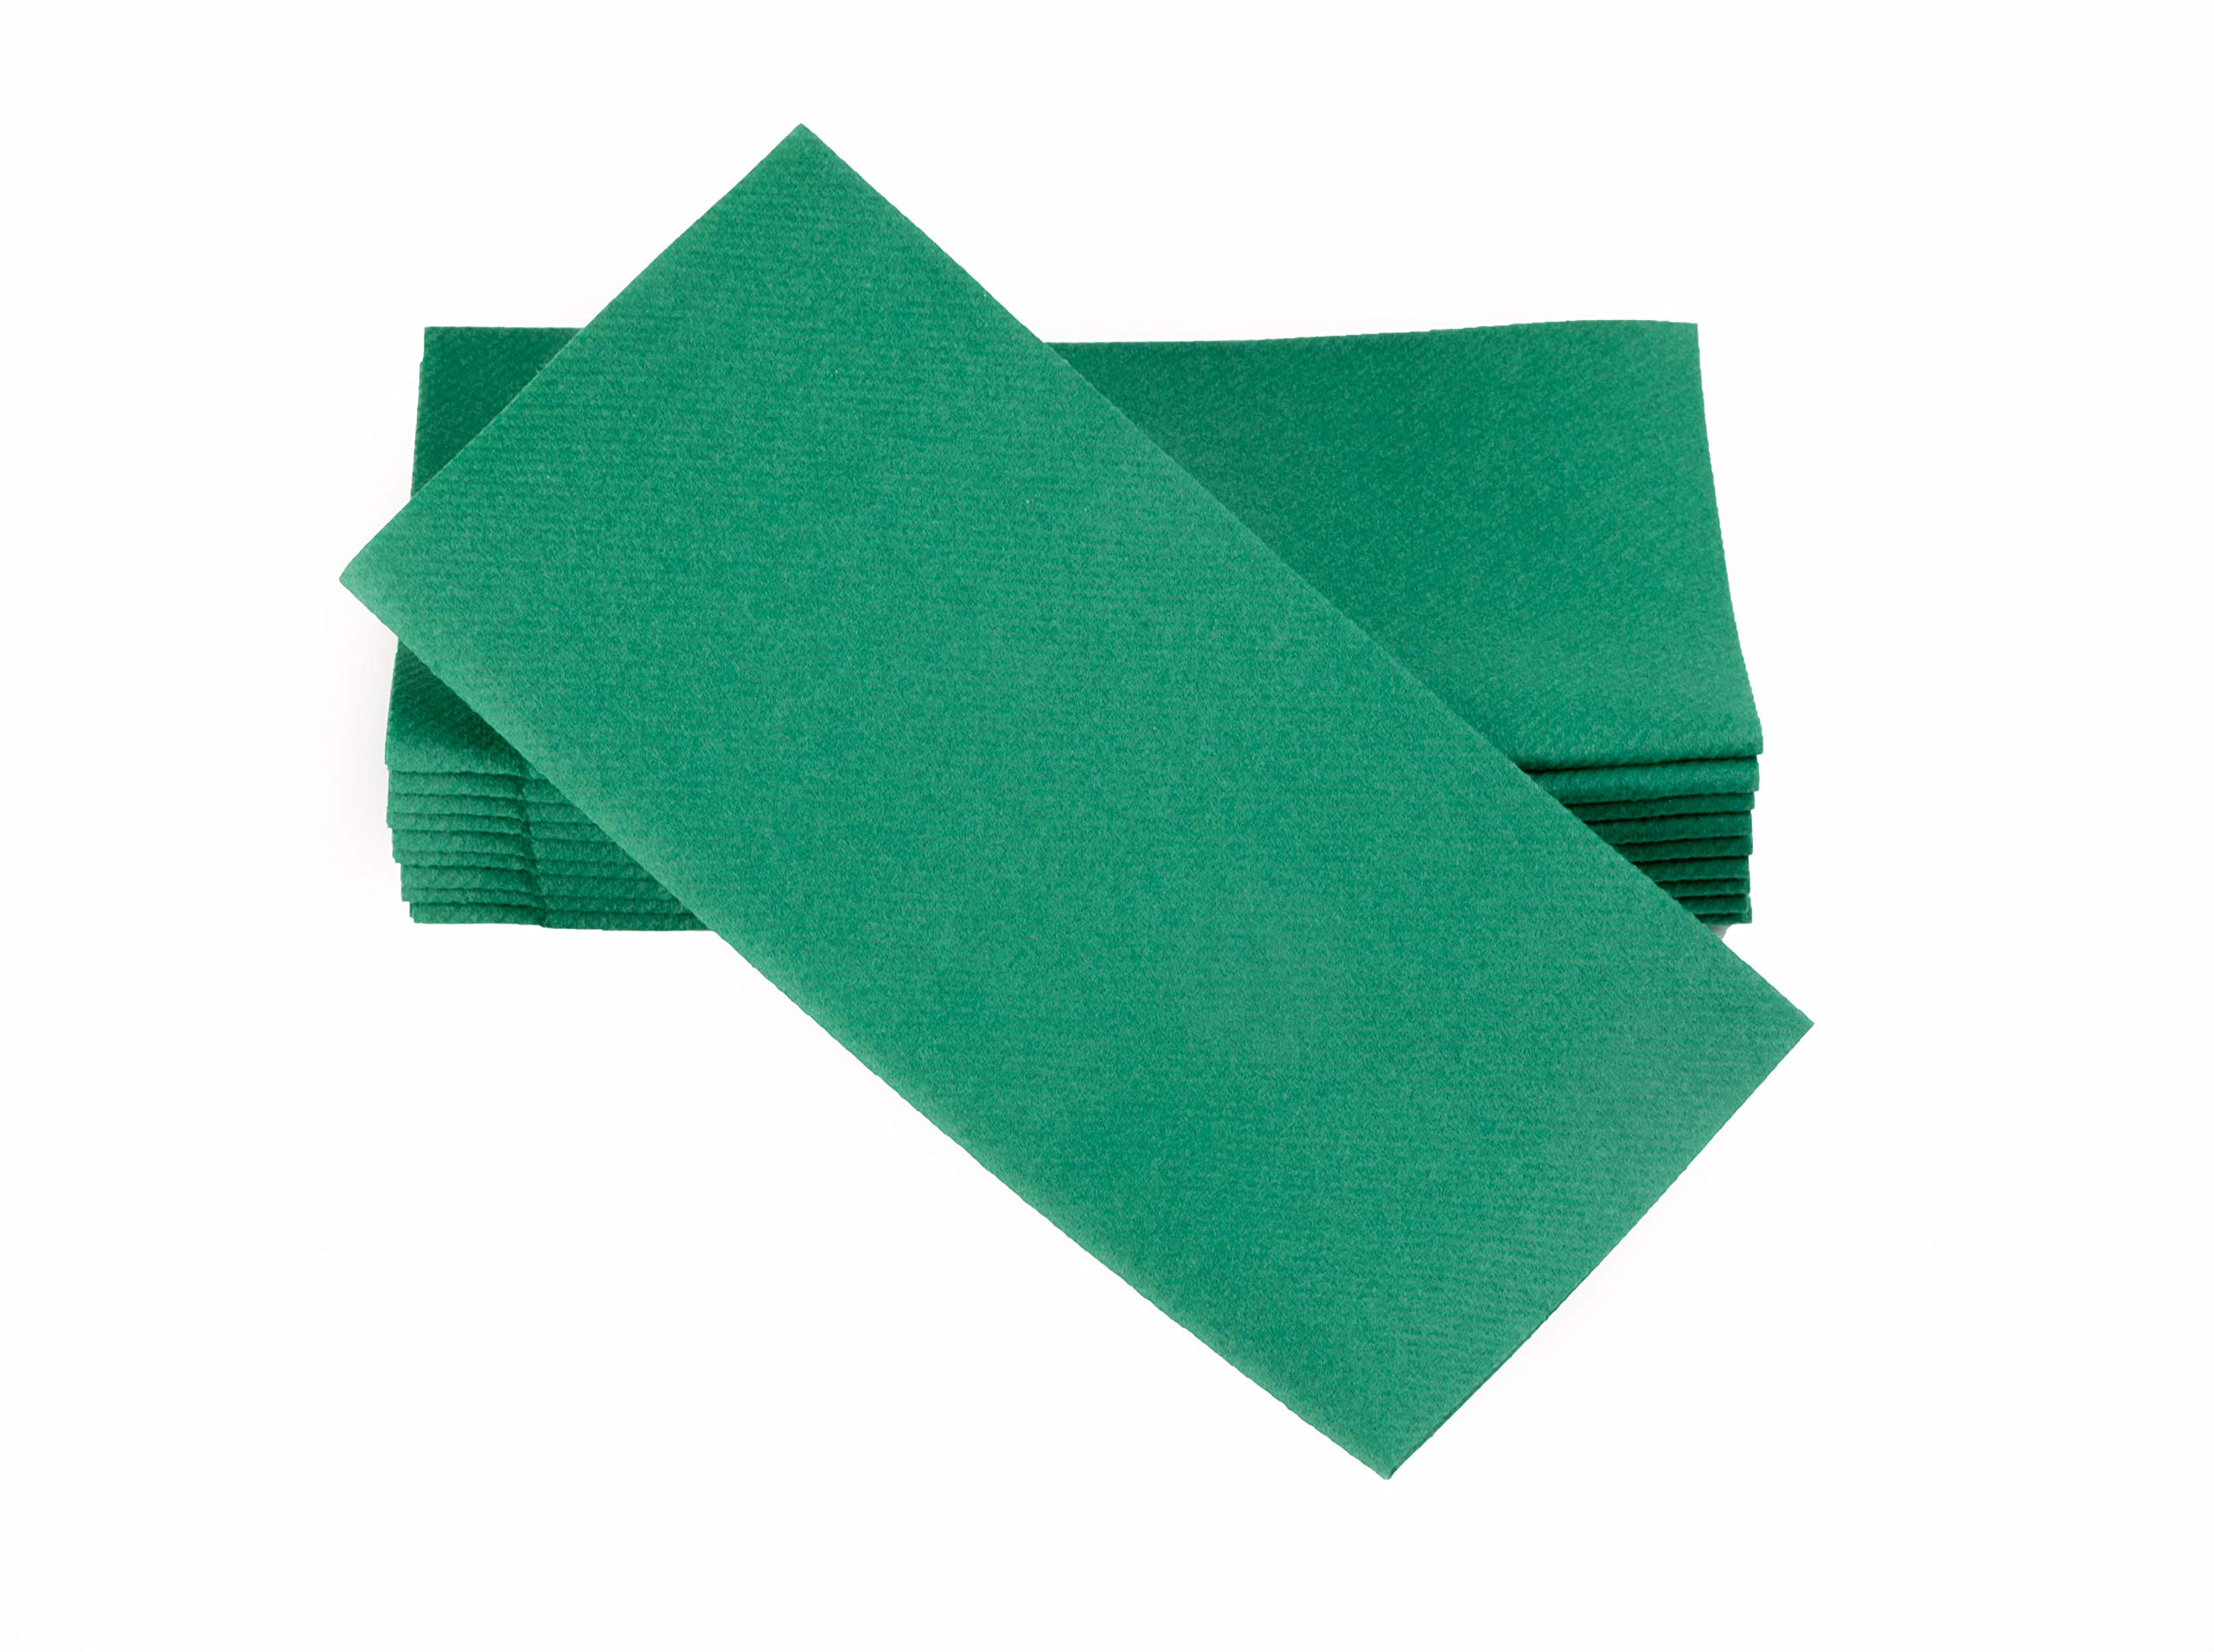 """Simulinen Colored Napkins - Decorative Cloth Like & Disposable, Dinner Napkins - Green - Soft, Absorbent & Durable - 16""""x16"""" - Great for Any Occasion! - Box of 50 - Perfect for St. Patrick's Day!"""